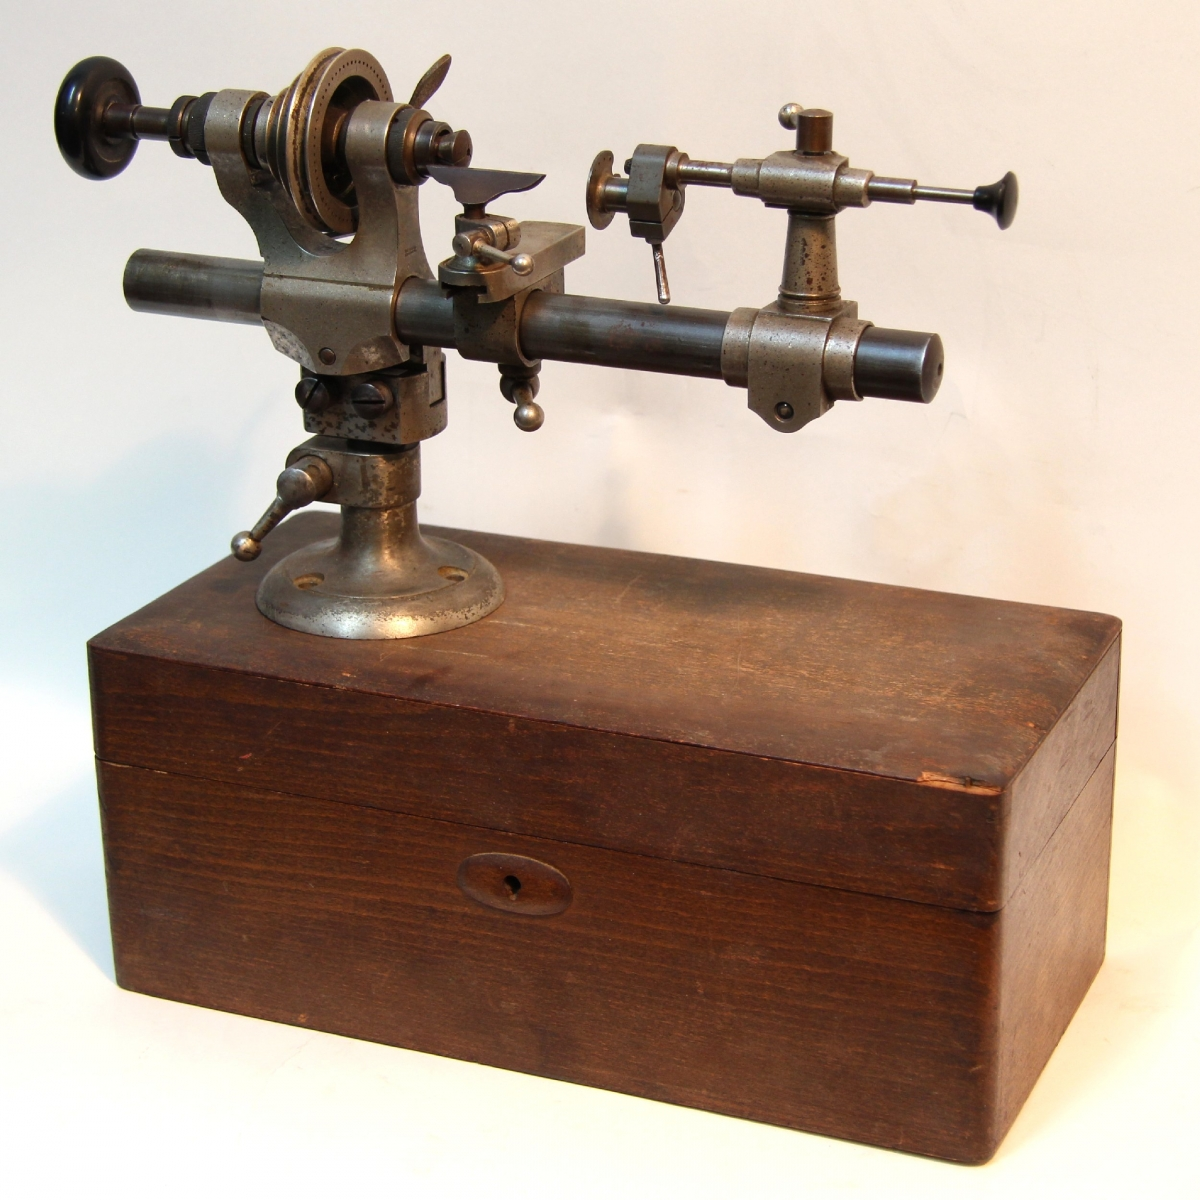 8mm Watchmaker S Lathe For Sale German Circa Early 20th